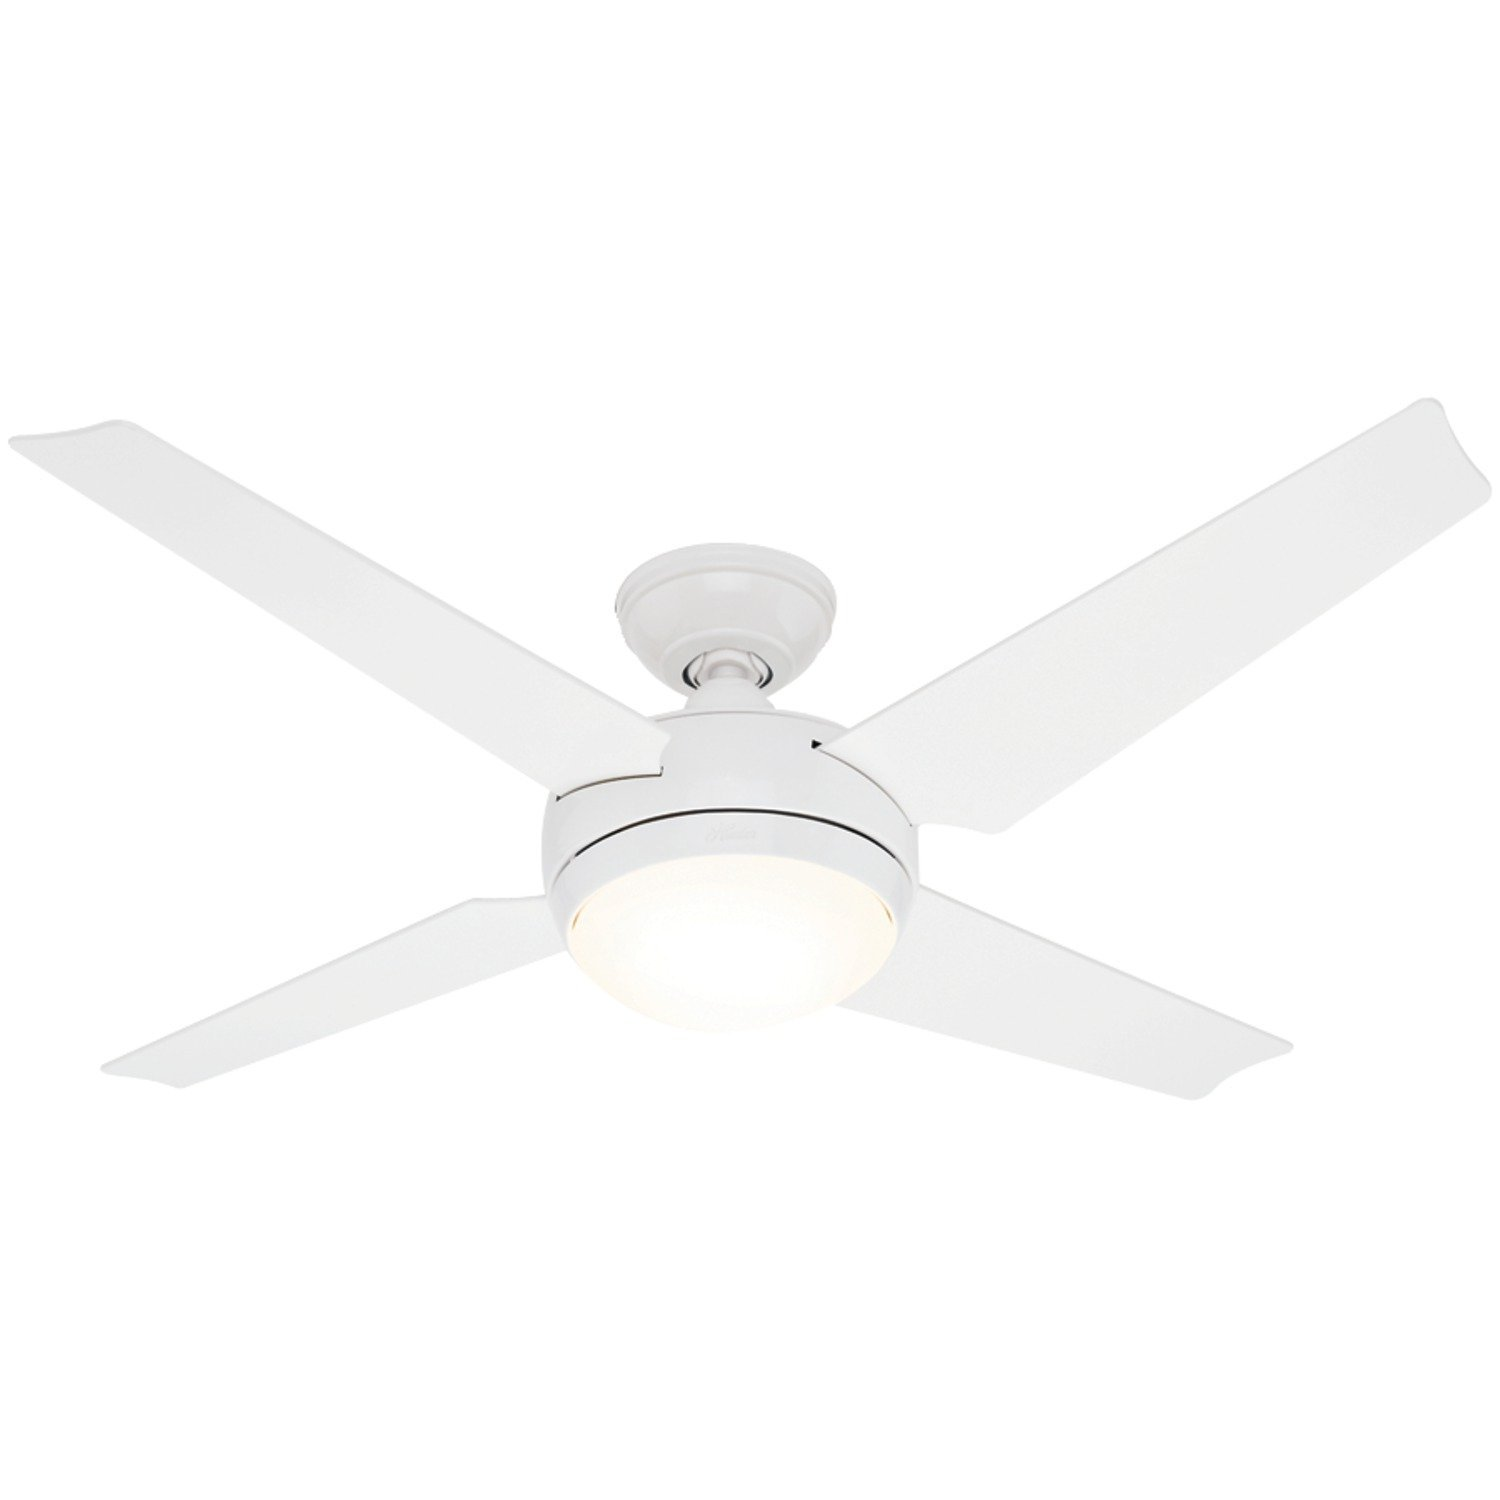 10 benefits of White ceiling fan light kit